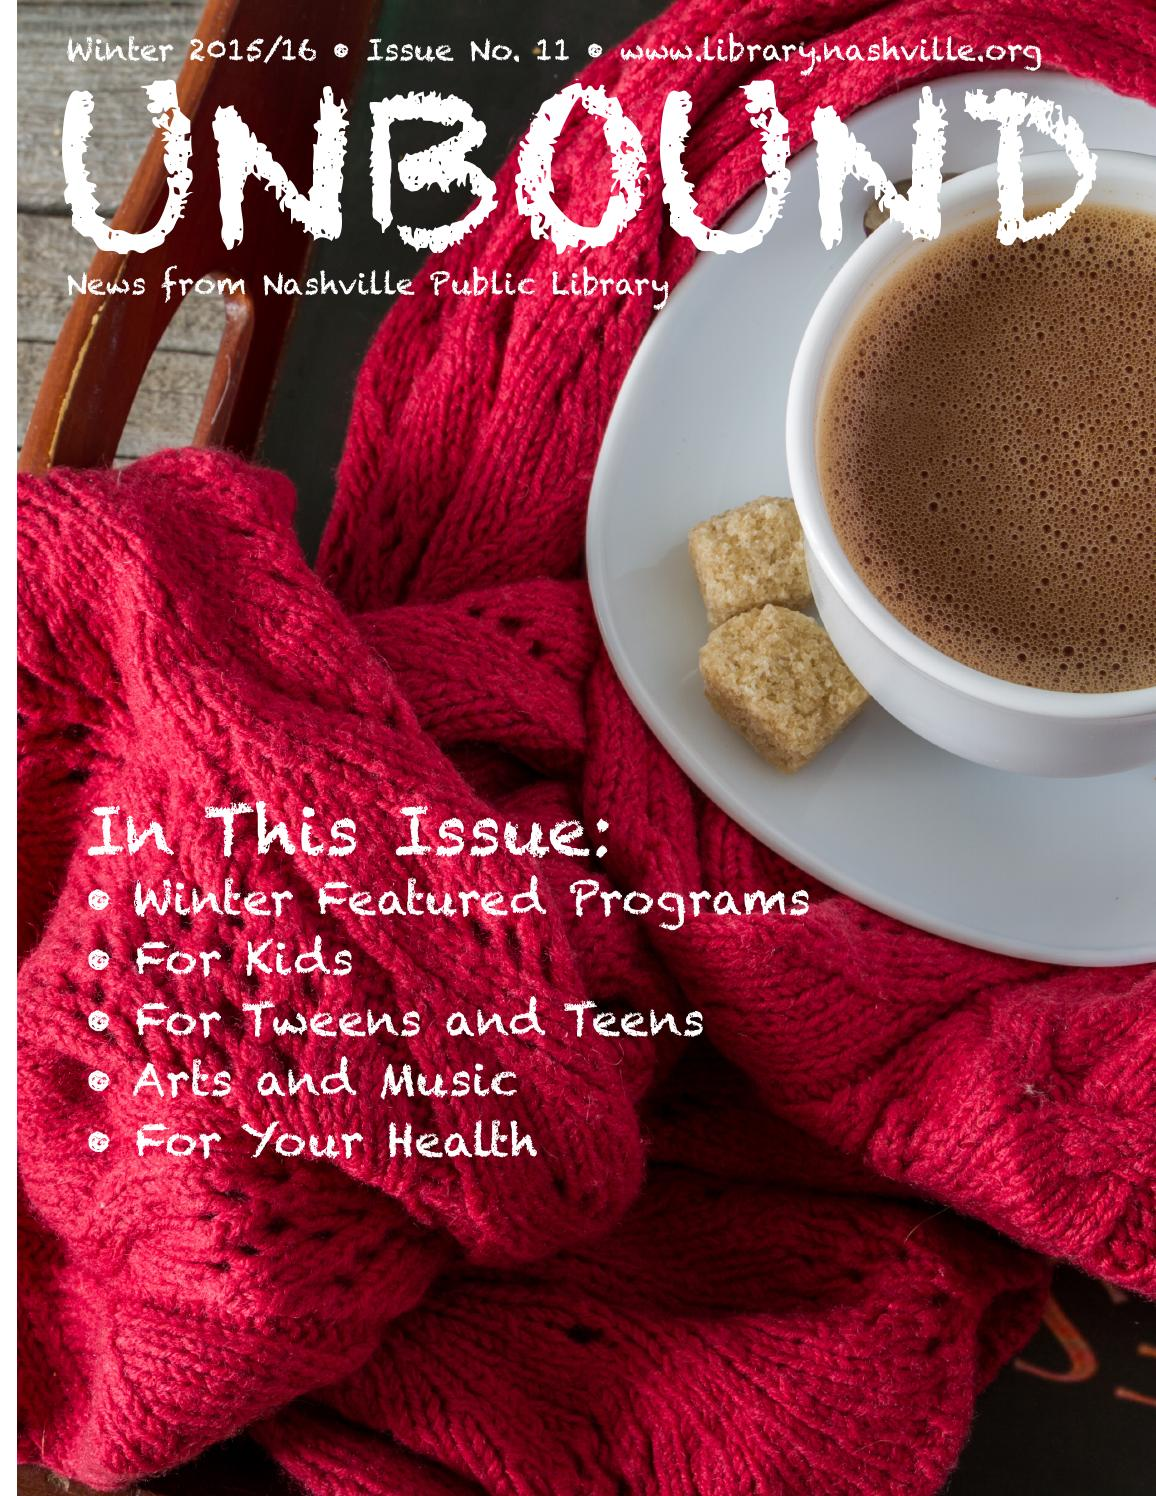 Unbound Winter 2015 2016 By Nashville Public Library Issuu Build Wonder Material Integrated Circuit Smaller Than A Grain Of Salt